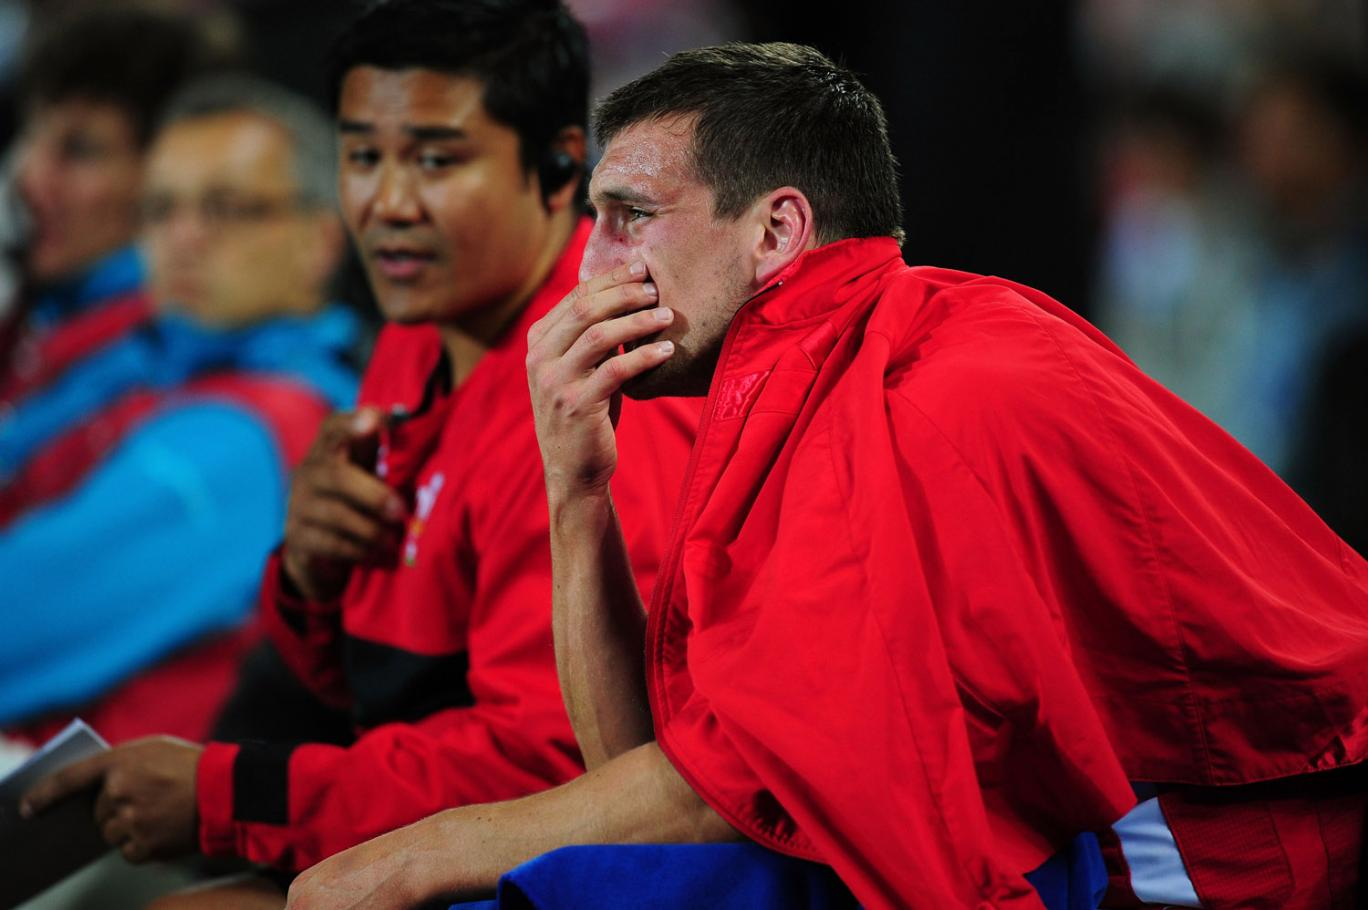 Distraught Wales captain Sam Warburton reacts after receiving a straight red card for a dengerous tackle on Vincent Clerc of France during semi final one of the 2011 IRB Rugby World Cup between Wales and France at Eden Park on October 15, 2011 in Auckland